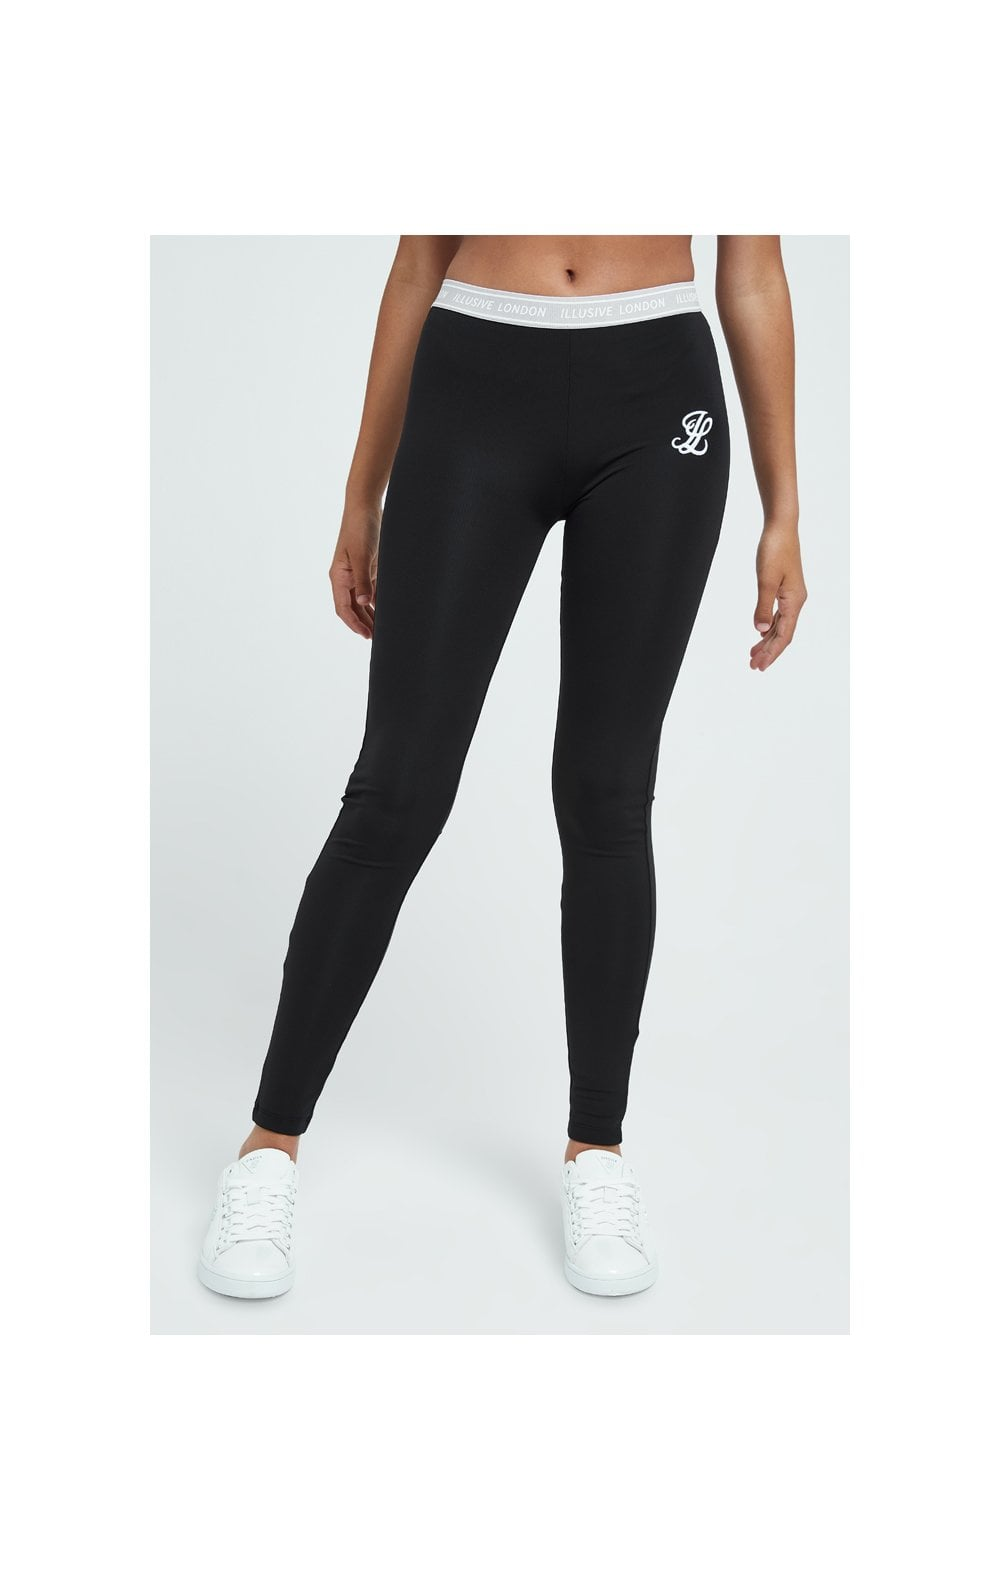 Illusive London Tape Leggings - Black